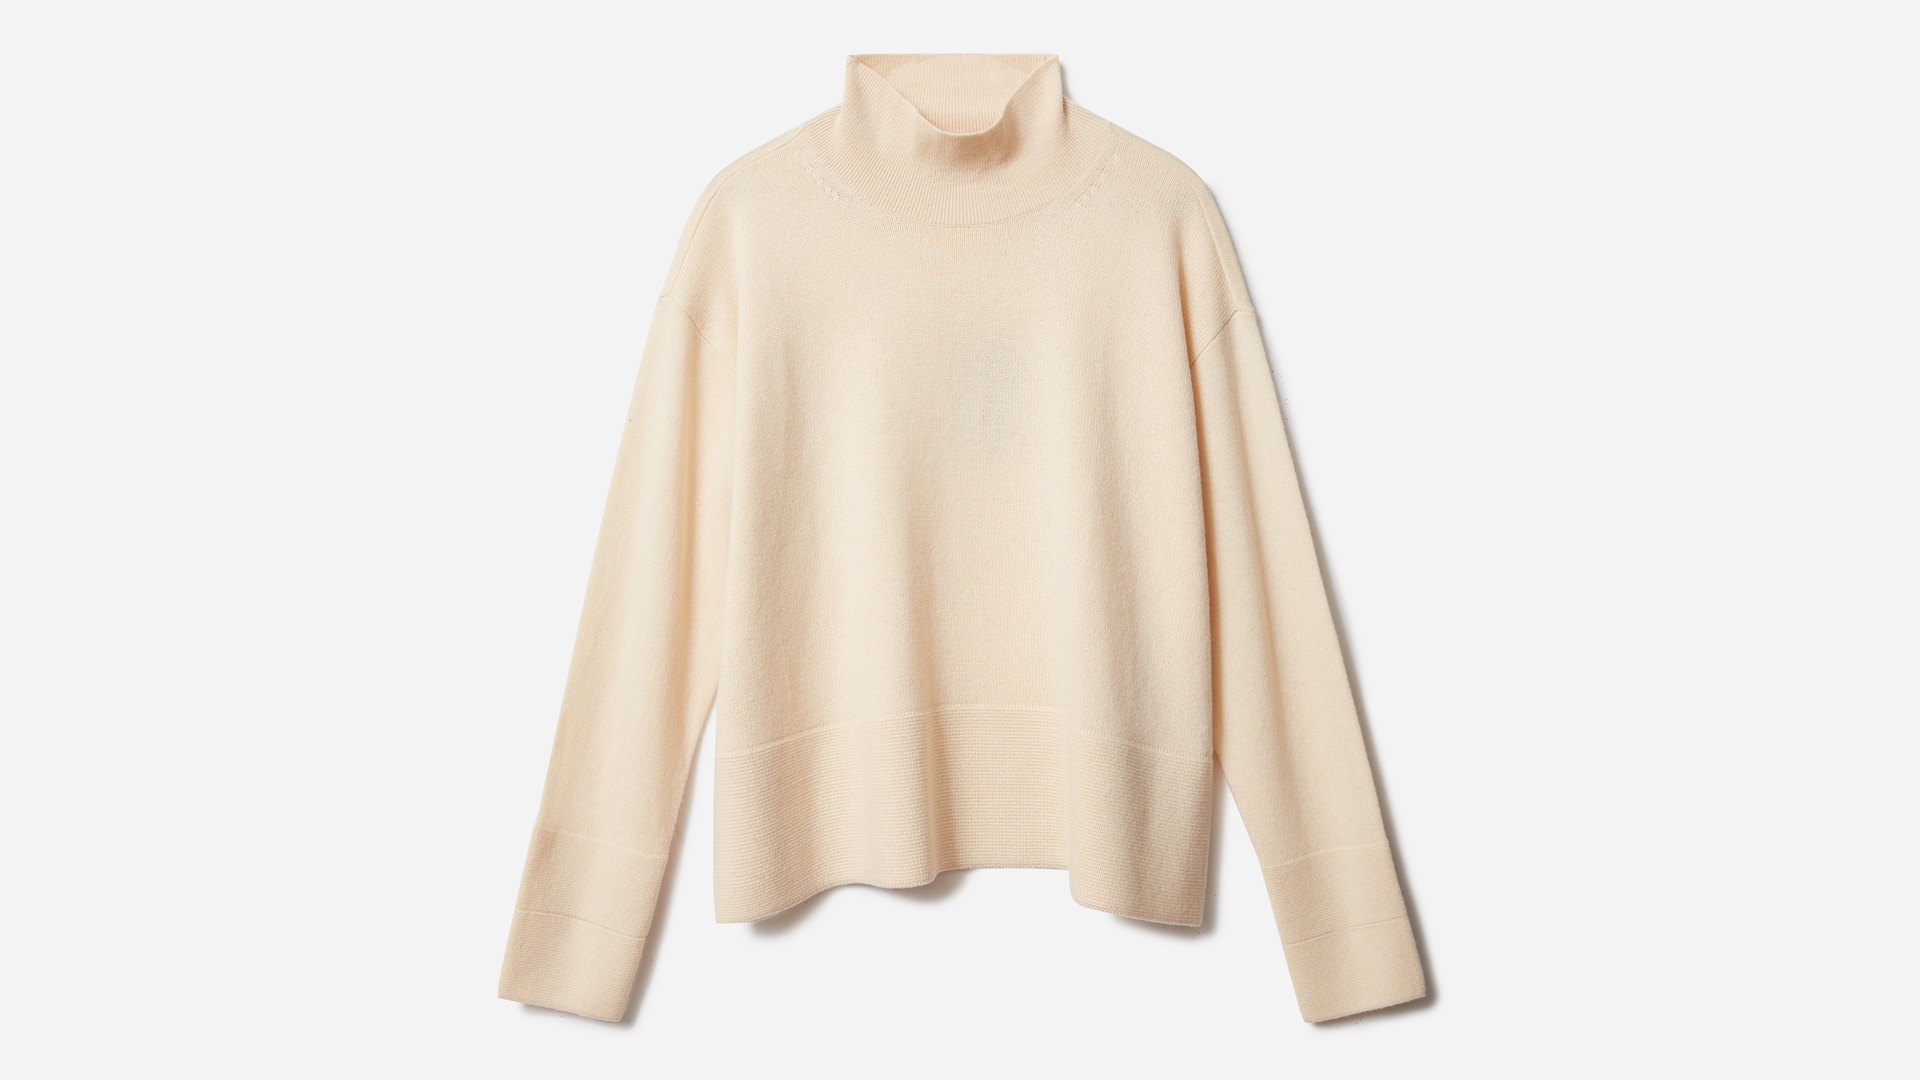 Everlane cashmere turtleneck